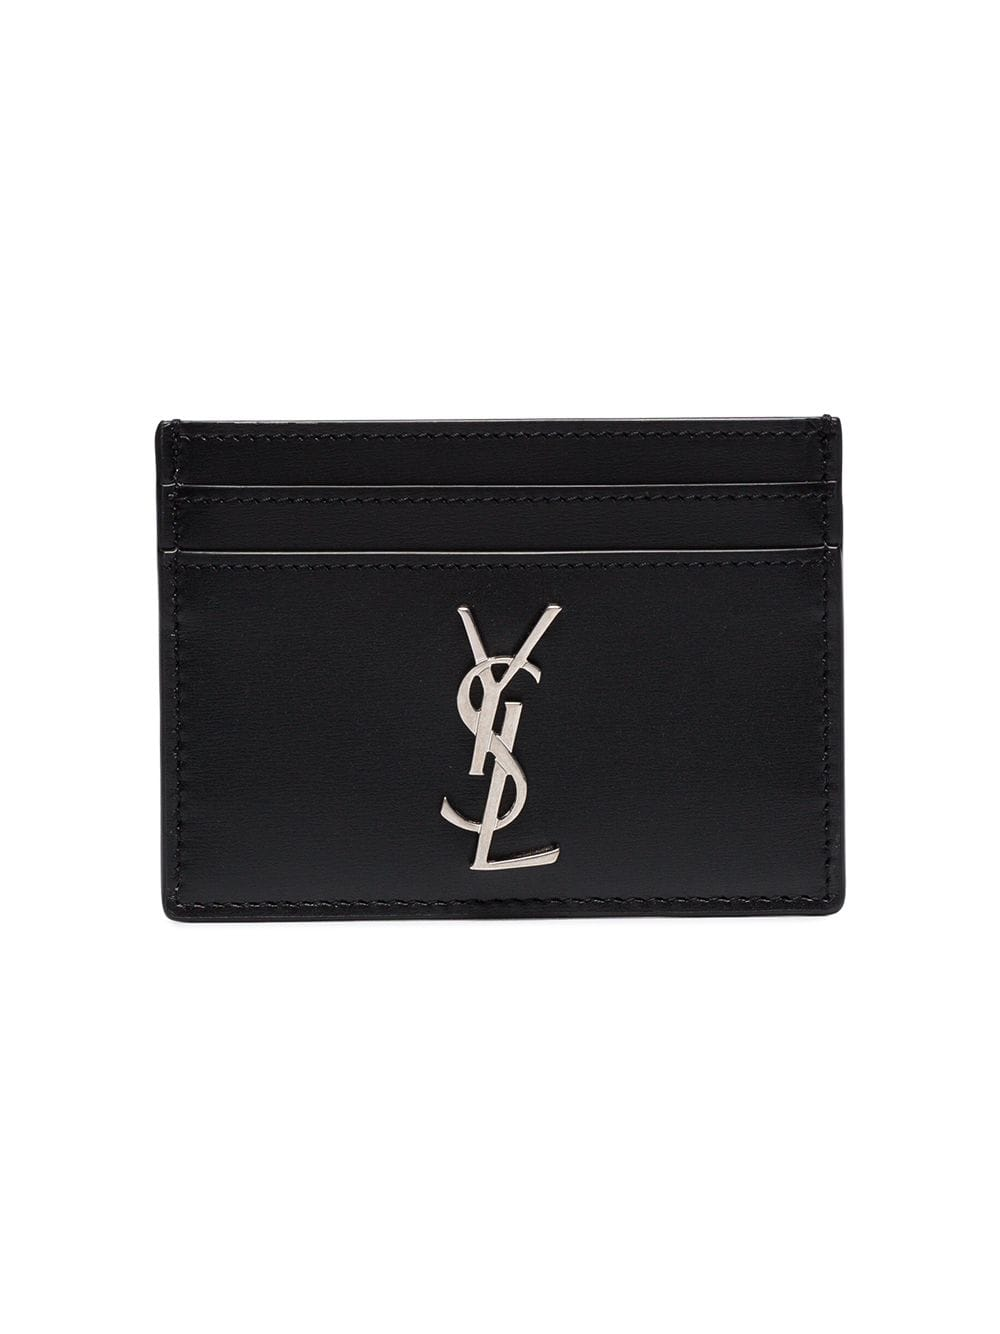 SAINT LAURENT LOGO MONOGRAM CARD HOLDER